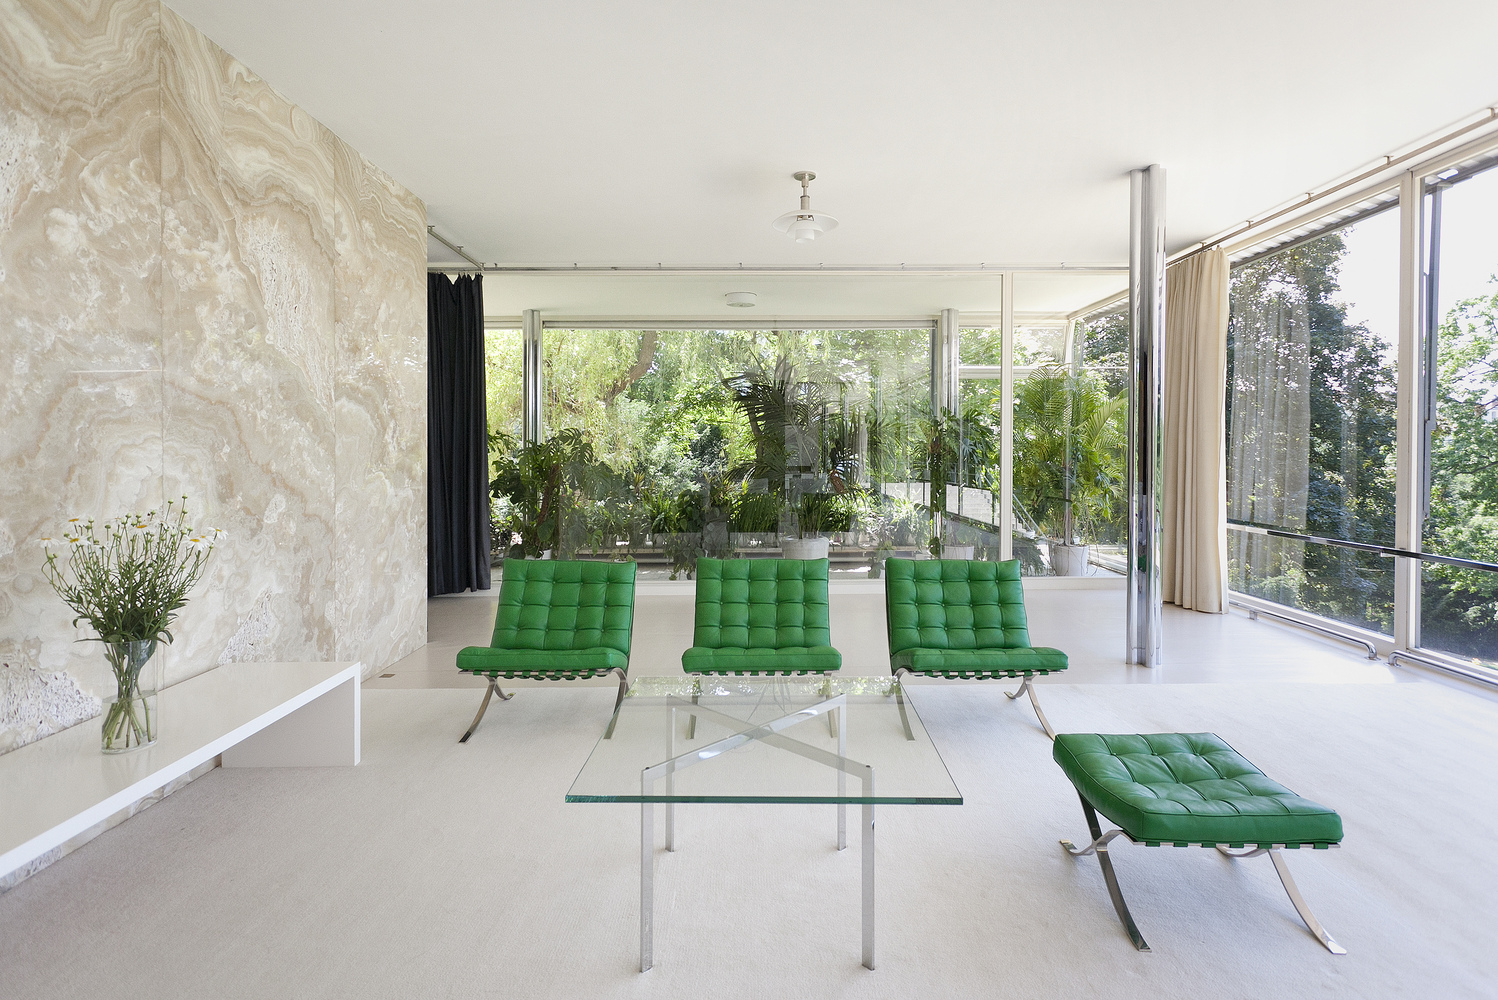 Mies Der Rohe Villa Tugendhat gallery of ad classics villa tugendhat mies der rohe 9